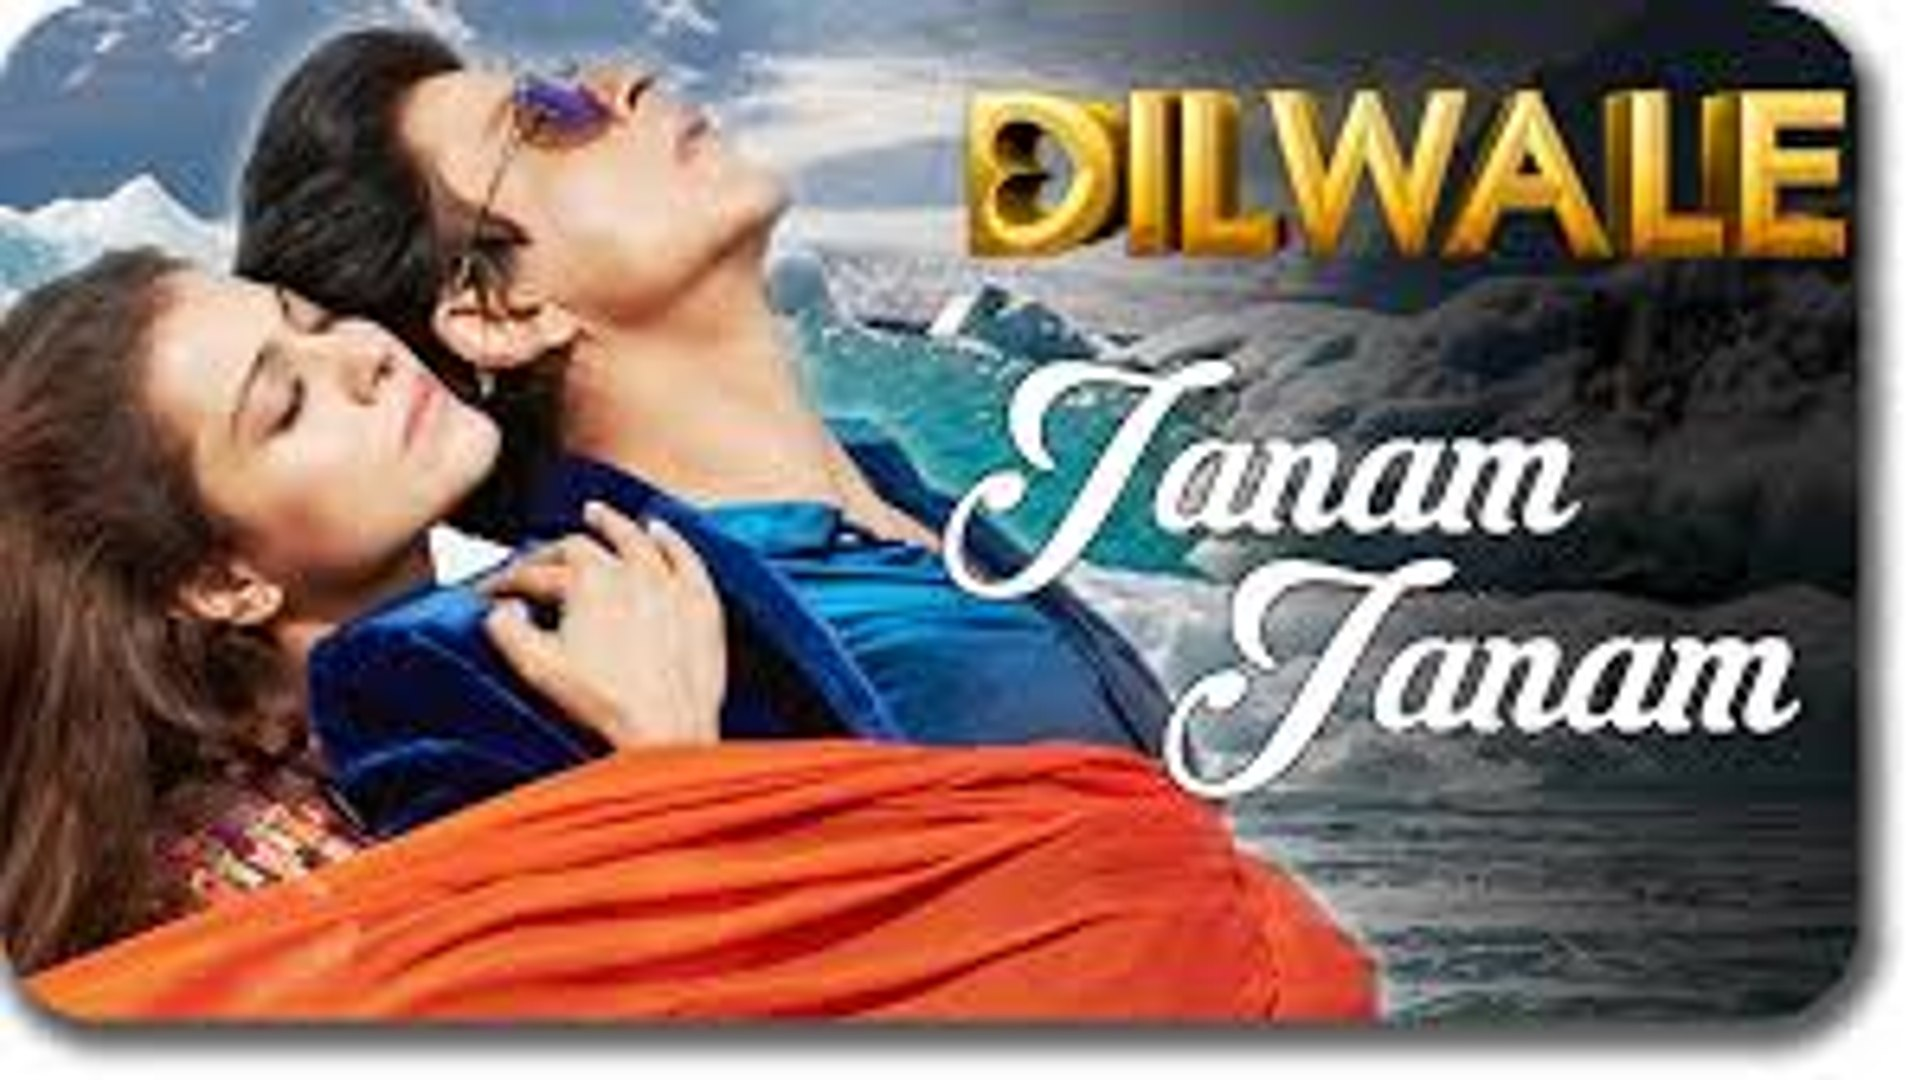 Janam Janam - Dilwale (2015) Movie Song - Shahrukh Khan - Varun Dhawan -  Kajol